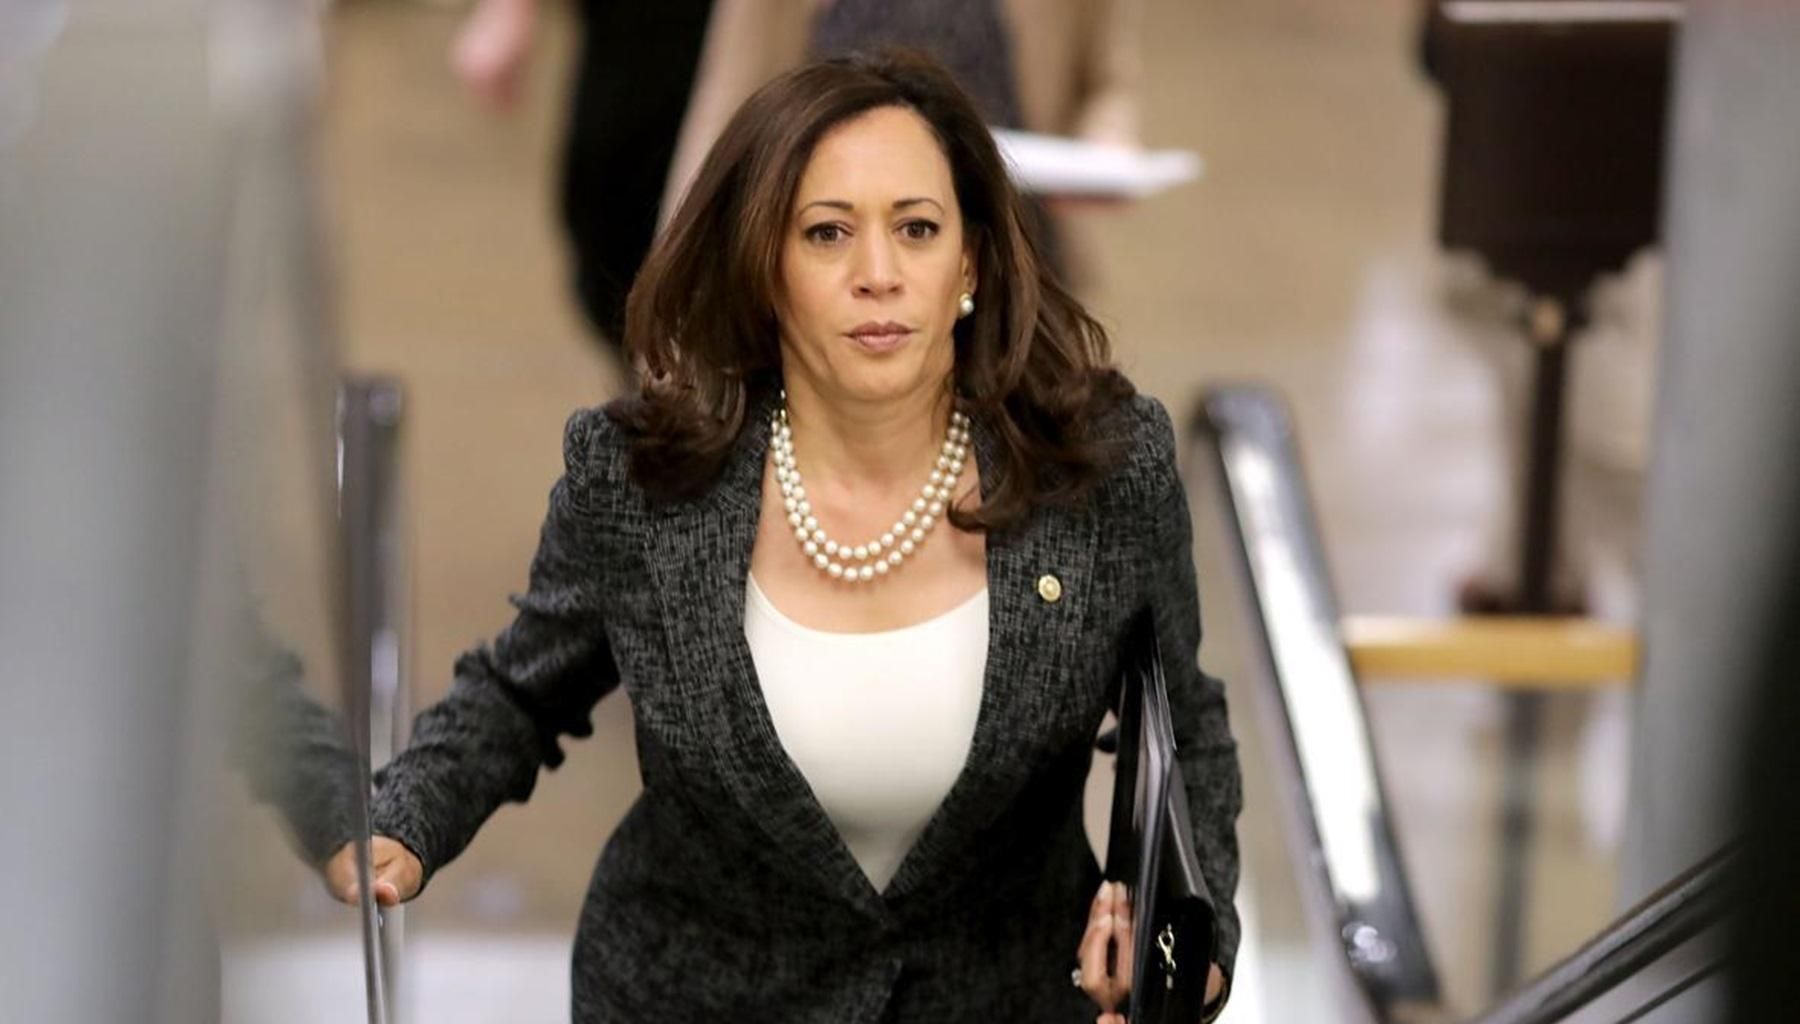 Kamala Harris Explains Why Donald Trump's Activities On Twitter Should Get Him Suspended